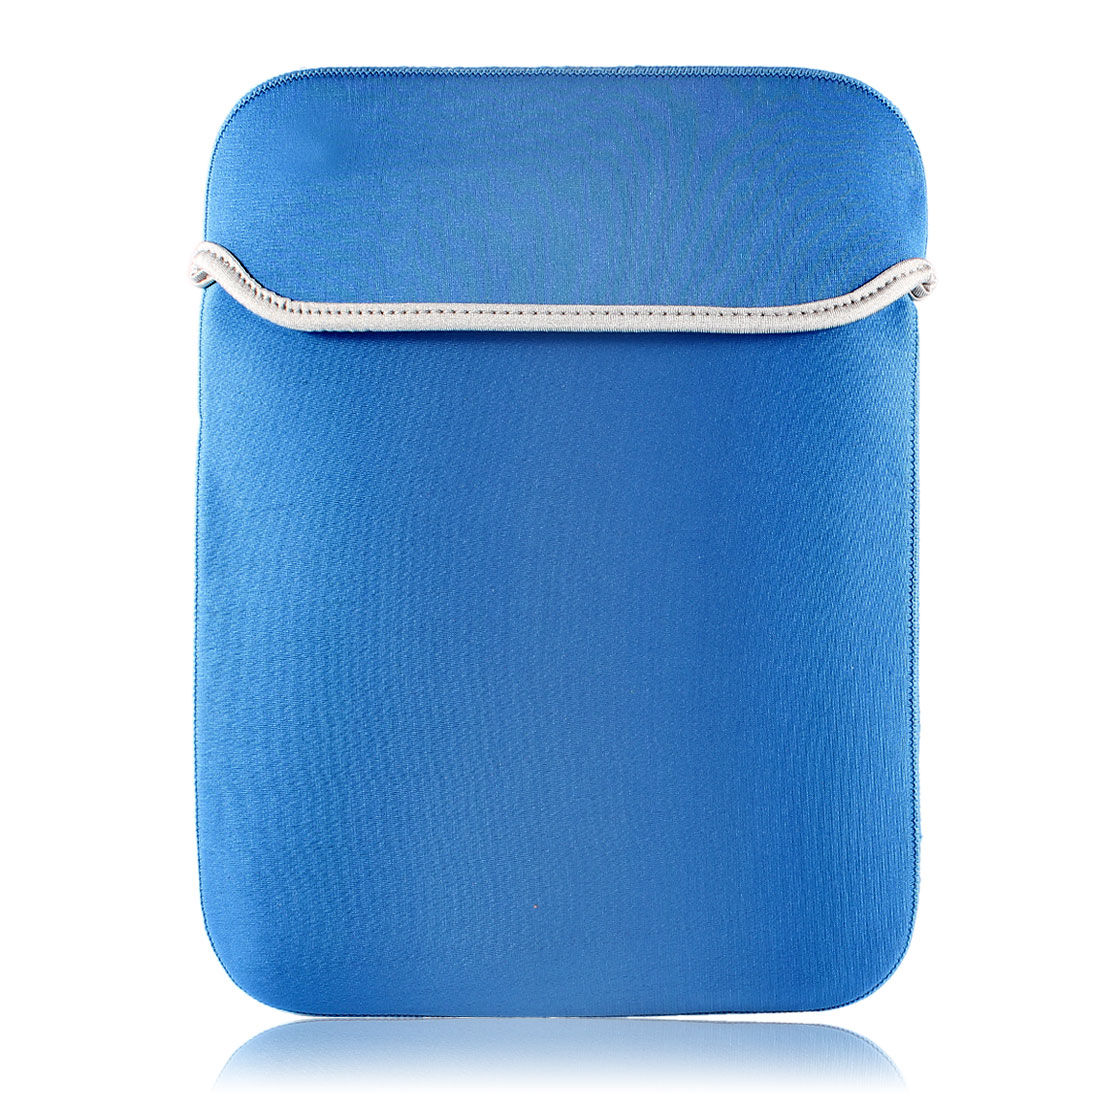 Blue Soft Neoprene Sleeve Bag Pouch for Tablet PC